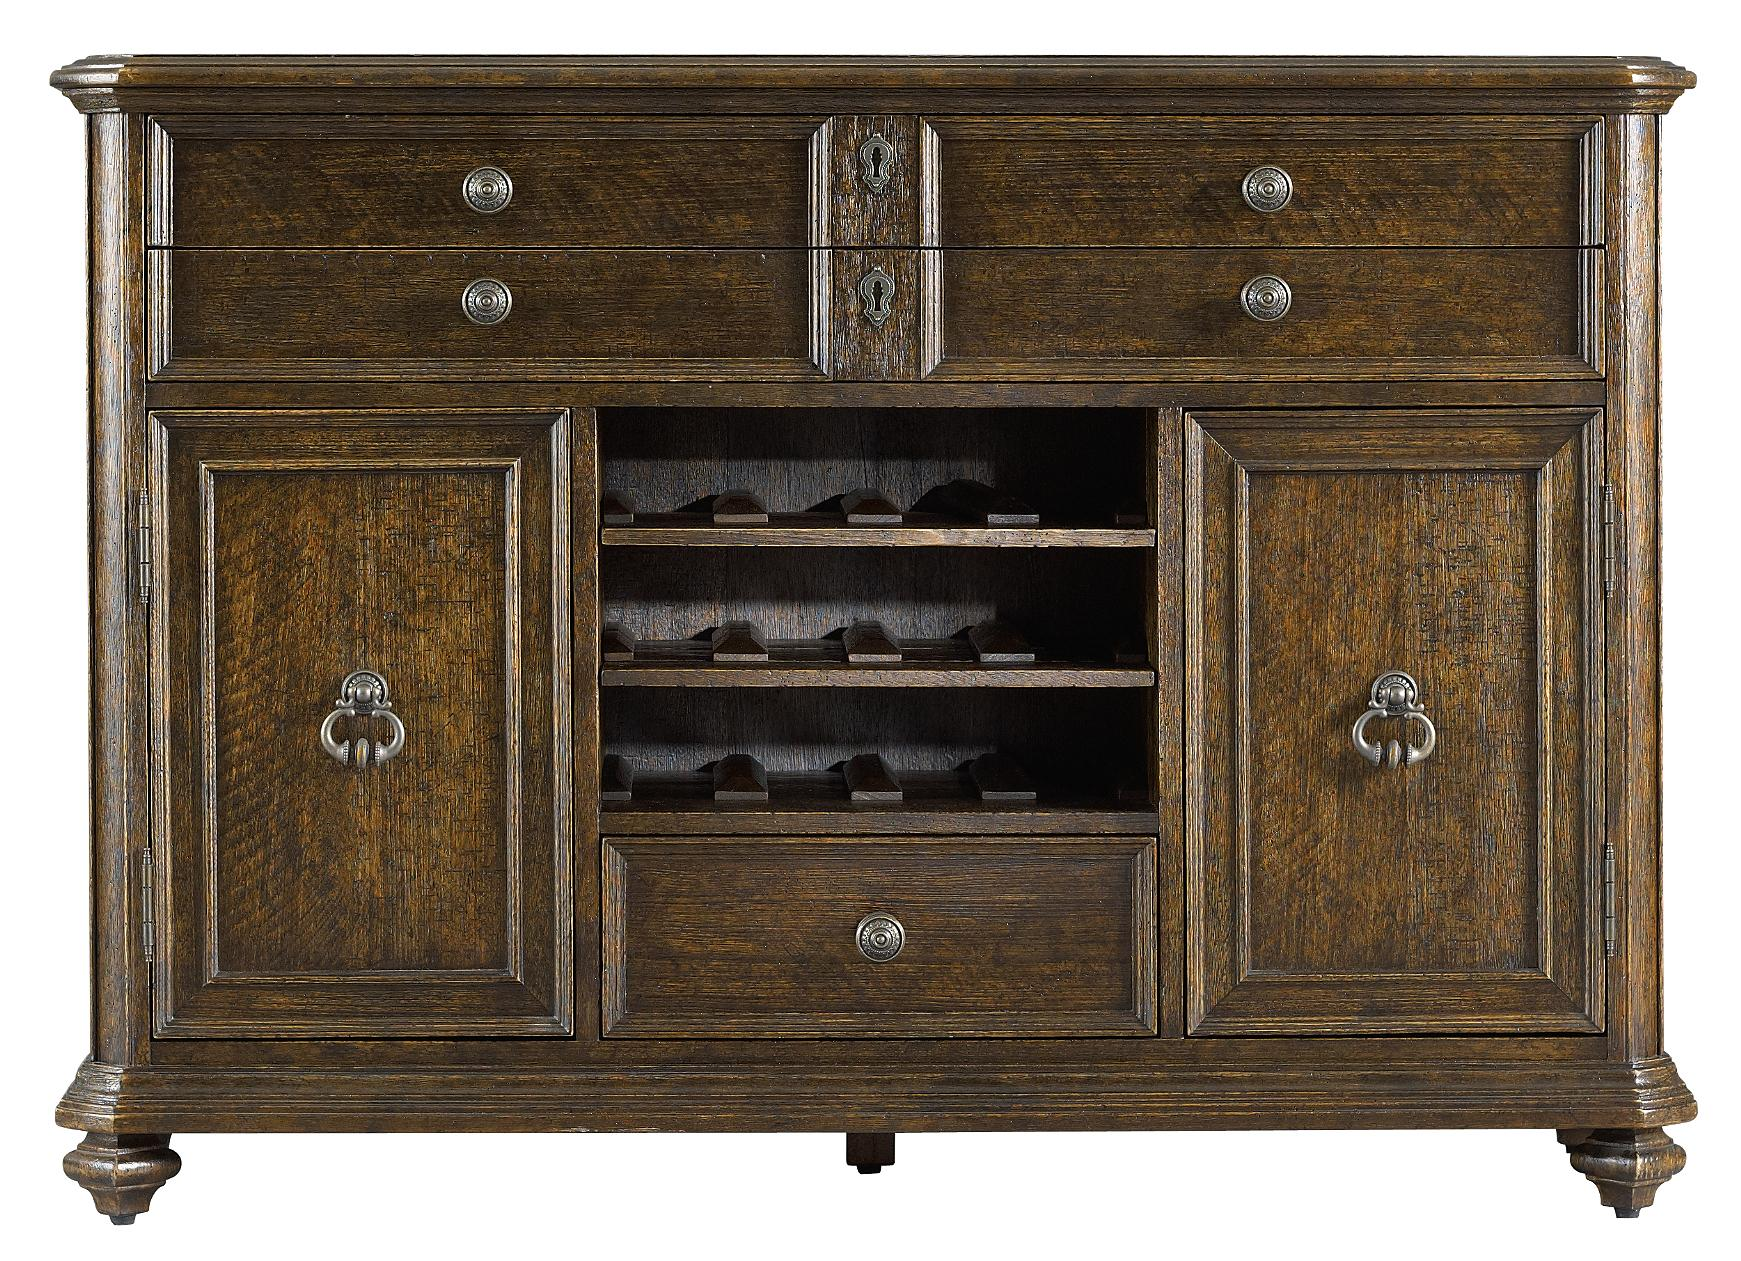 Stanley Furniture Rustica Dining Cabinet - Item Number: 208-11-05